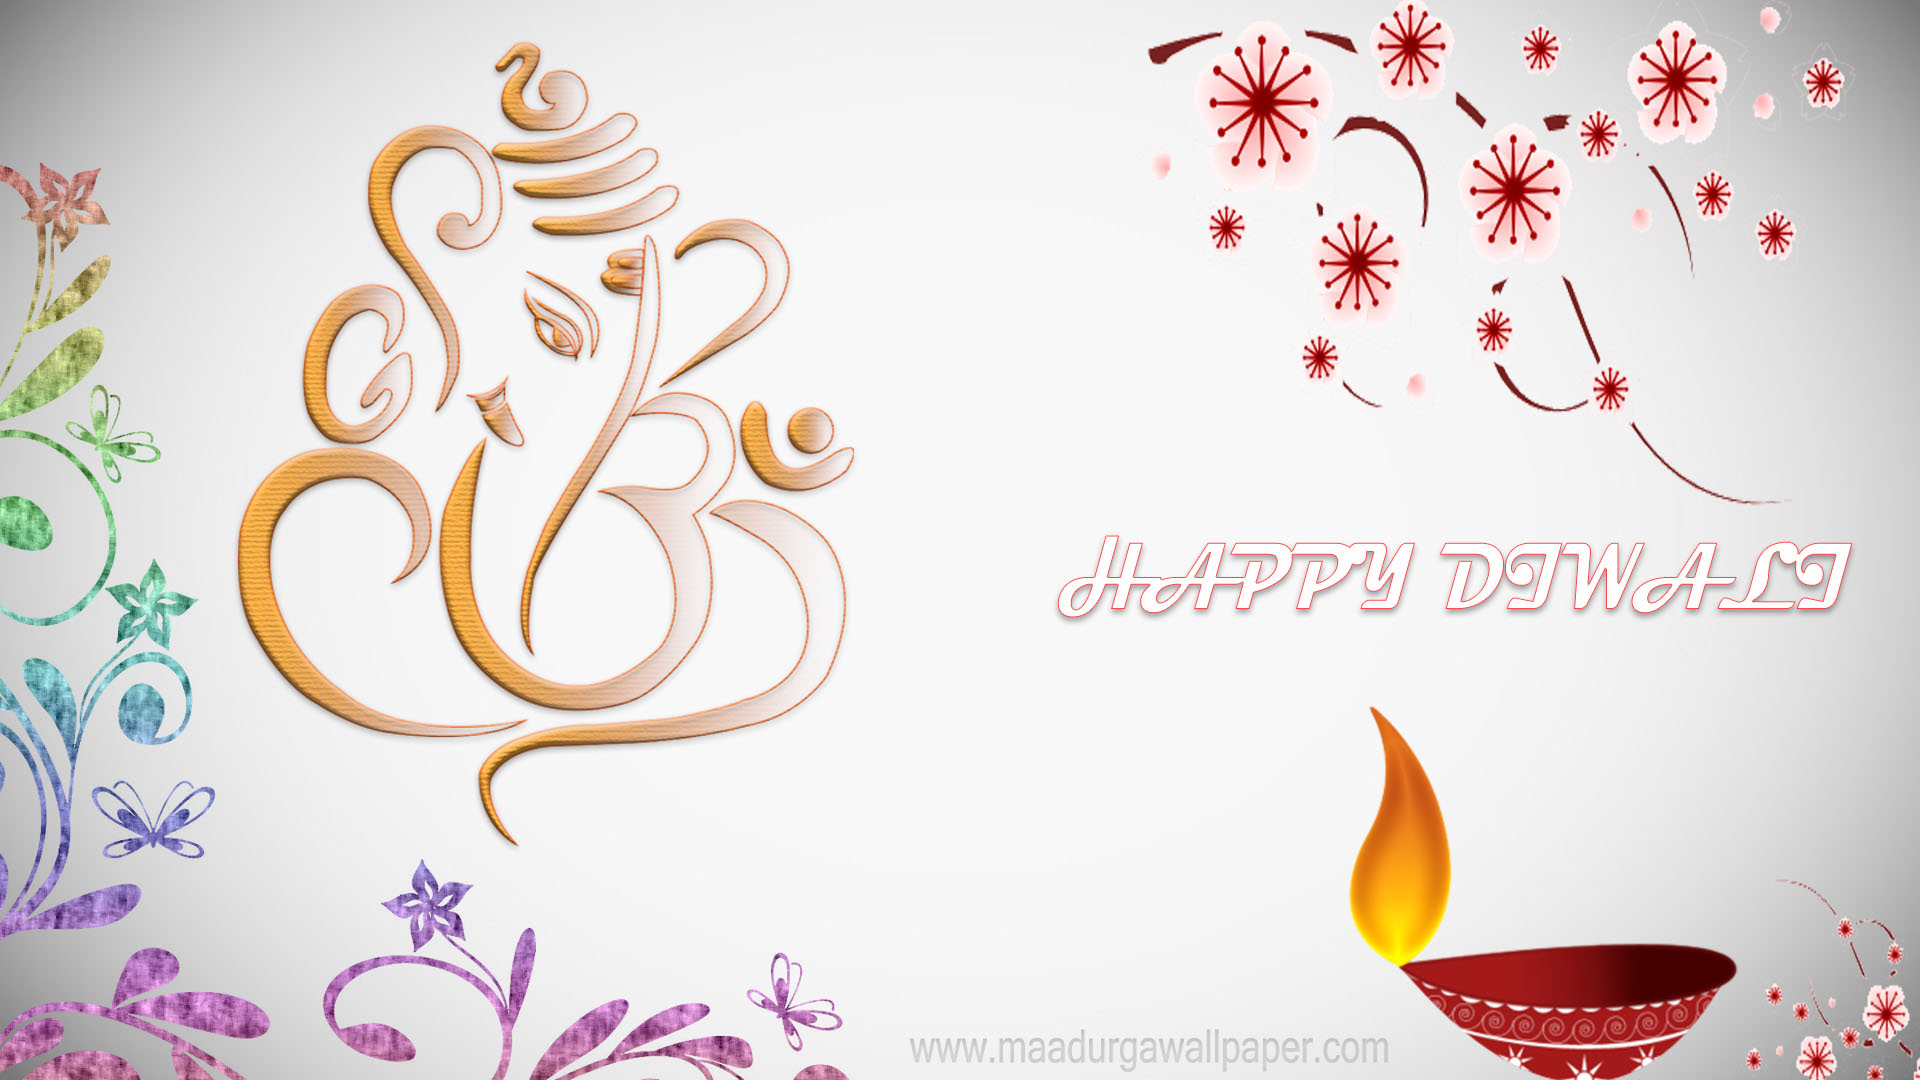 ganesha-diwali-wallpaper-photo-images-for-diwali-greetings